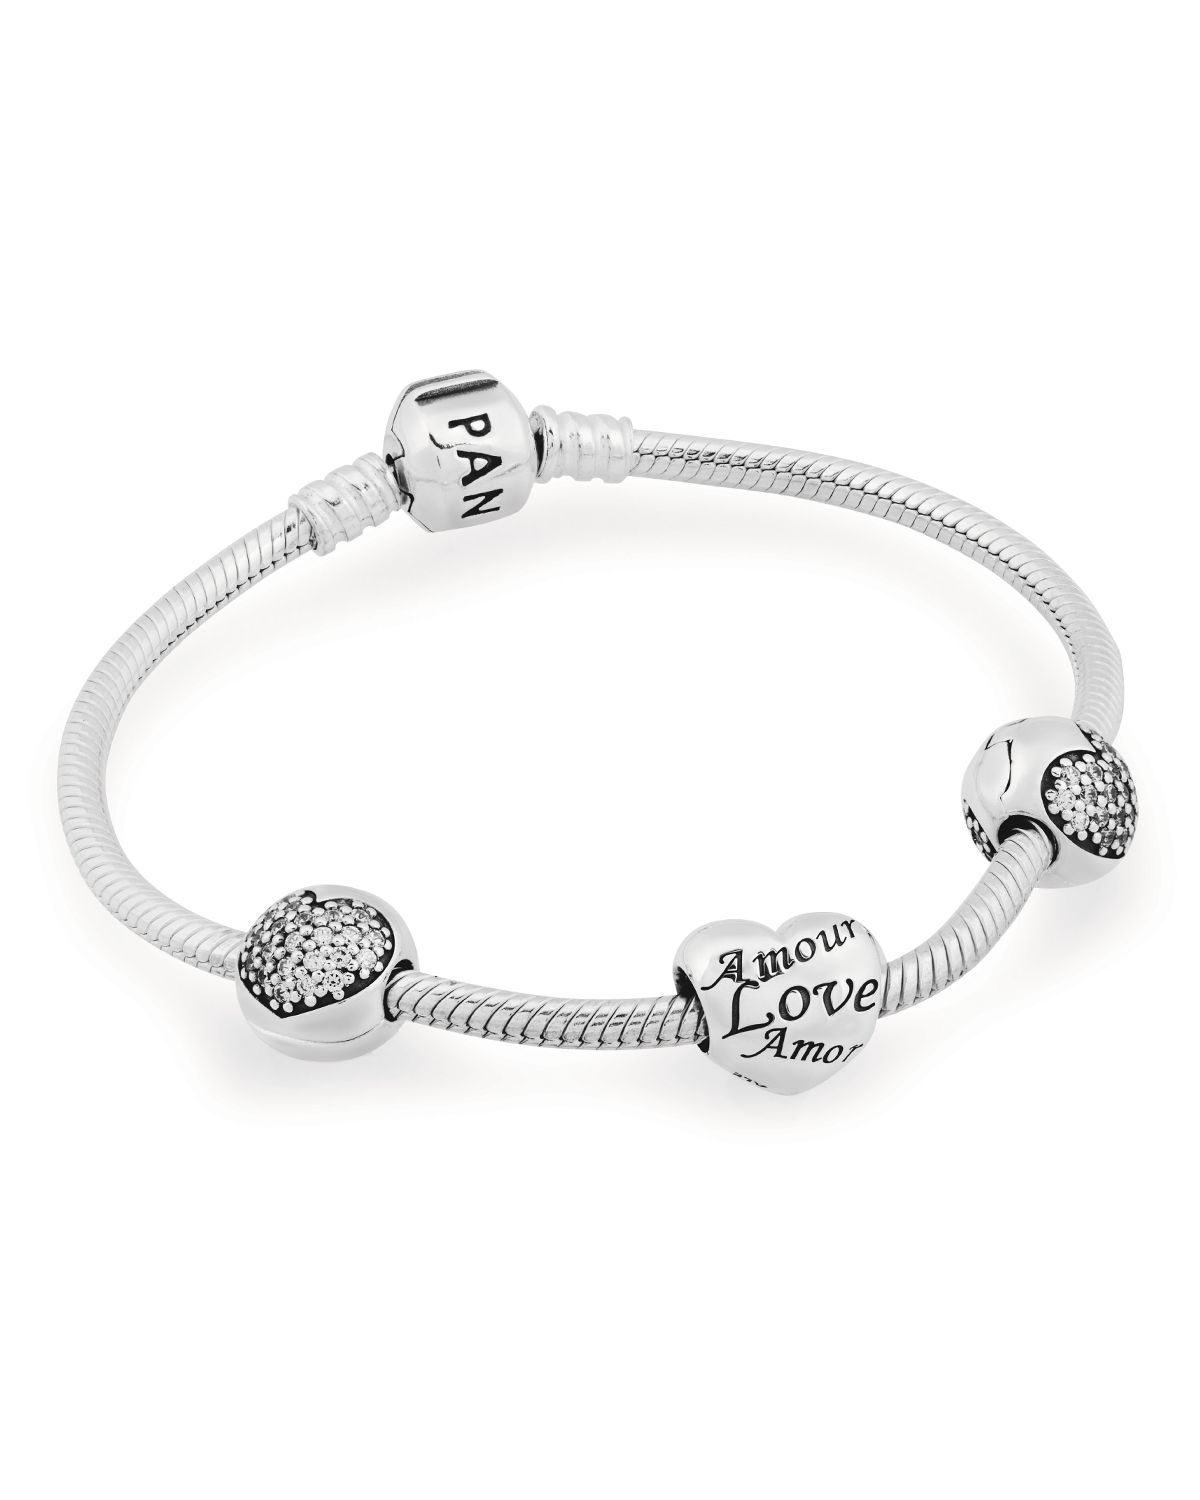 PANDORA Bracelet Gift Set - Love of My Life | Bloomingdale's